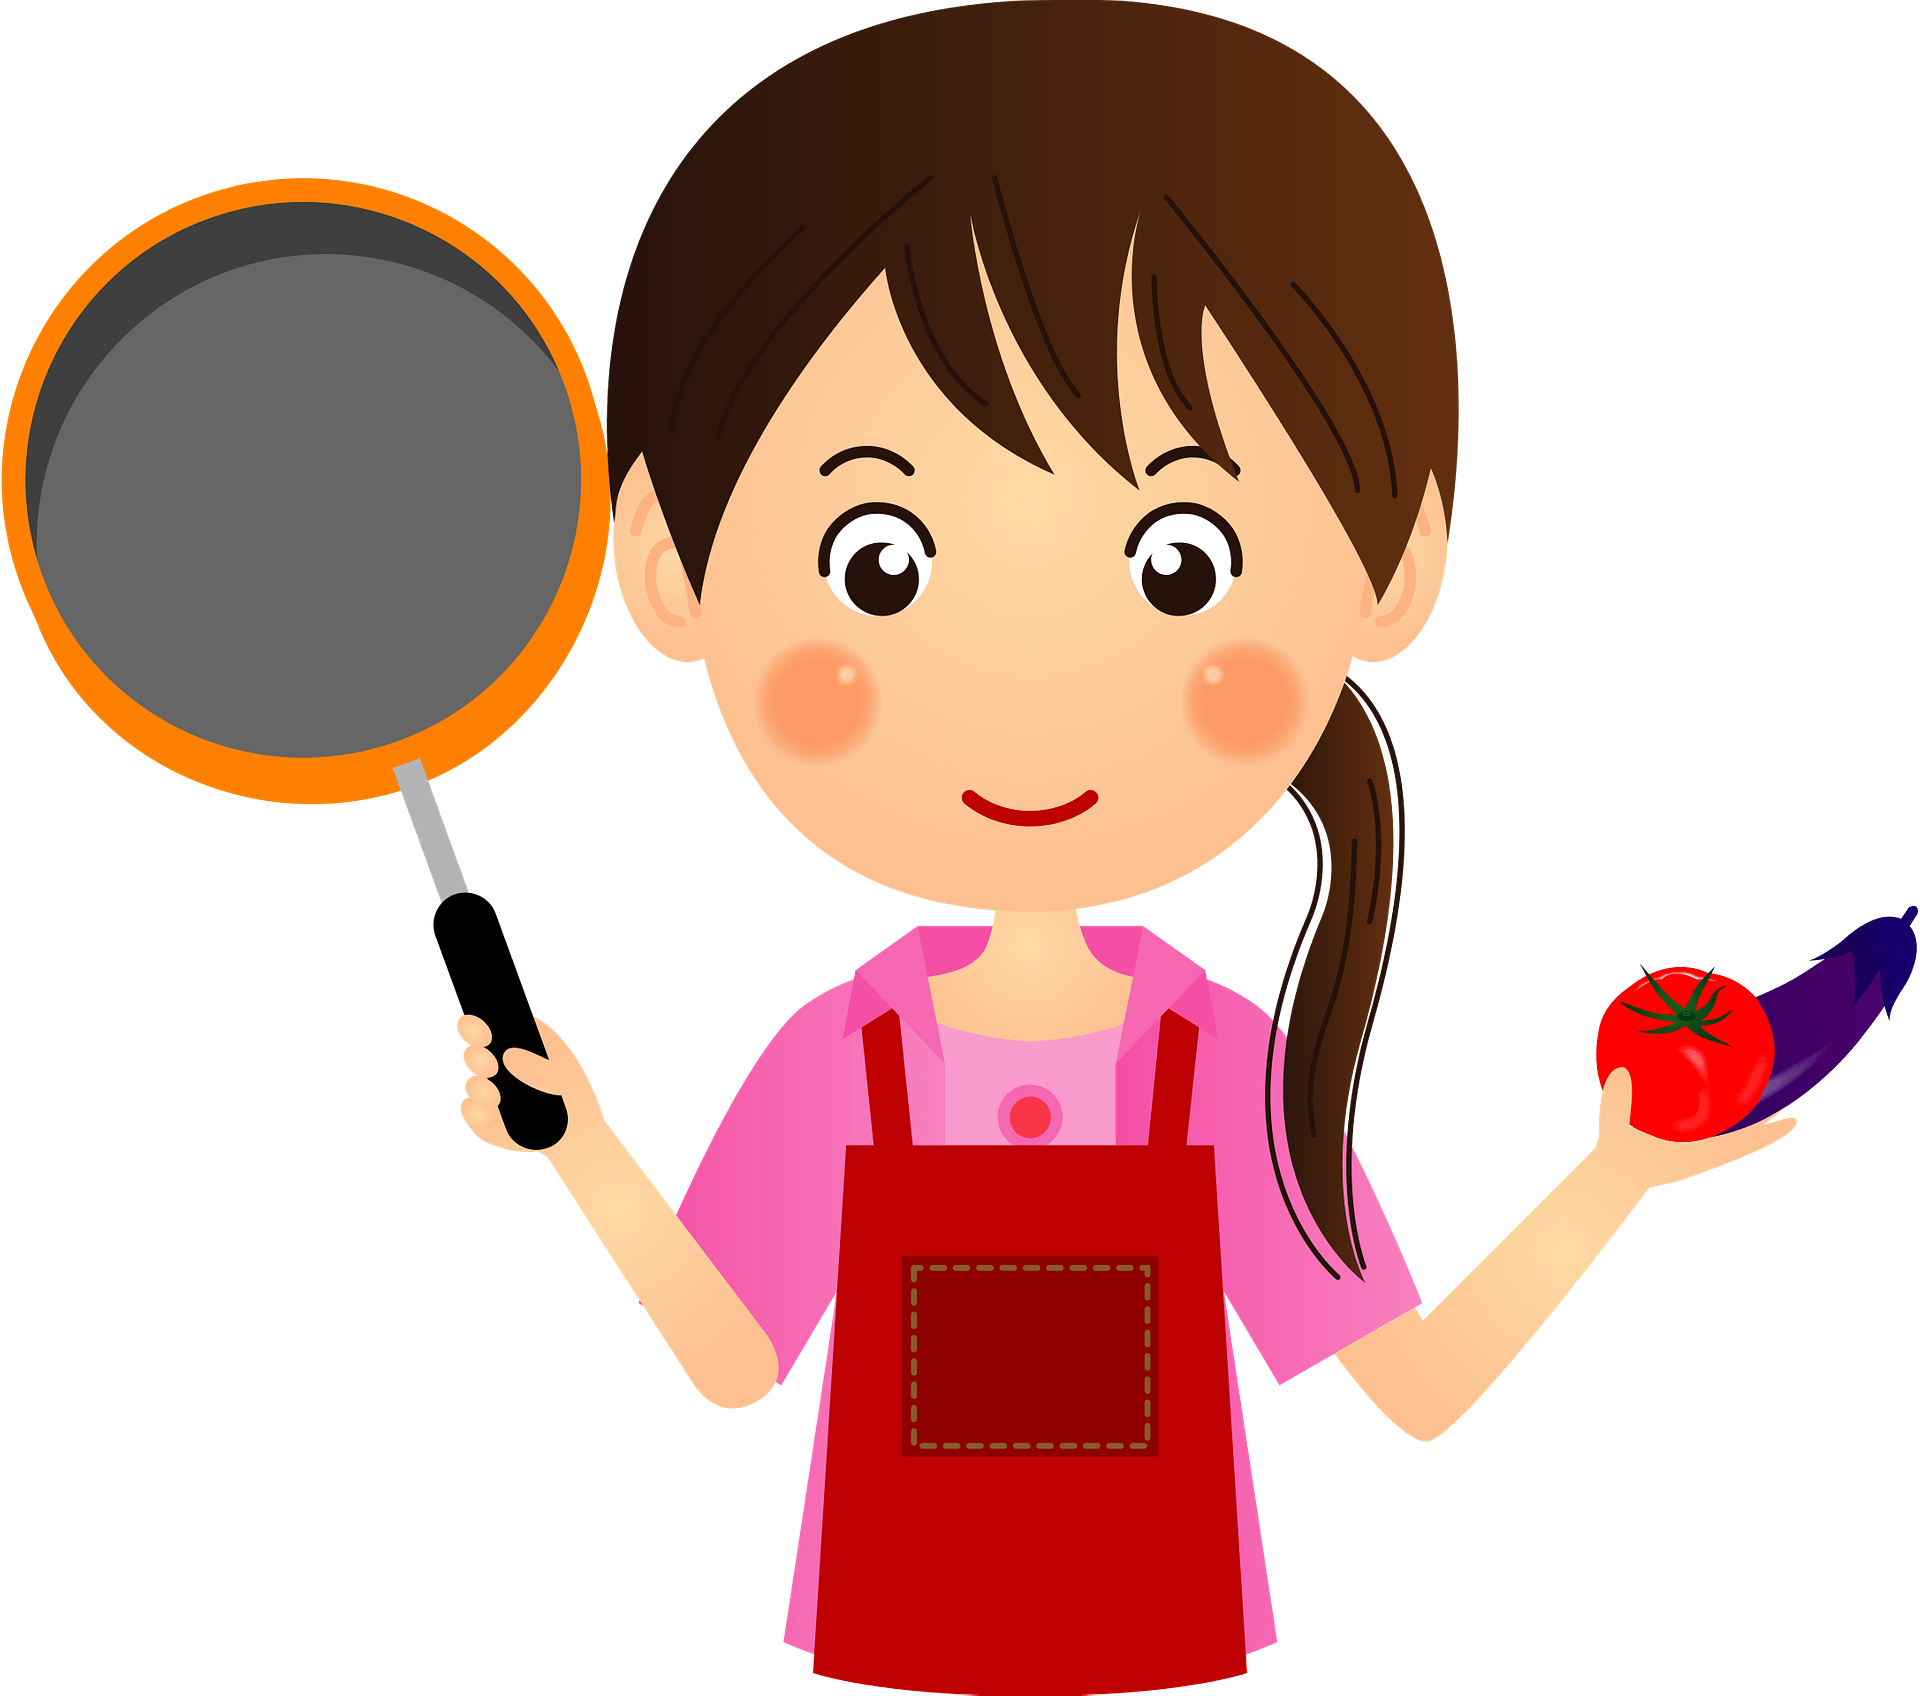 Free Classroom Cooking Cliparts, Download Free Clip Art, Free Clip Art on  Clipart Library